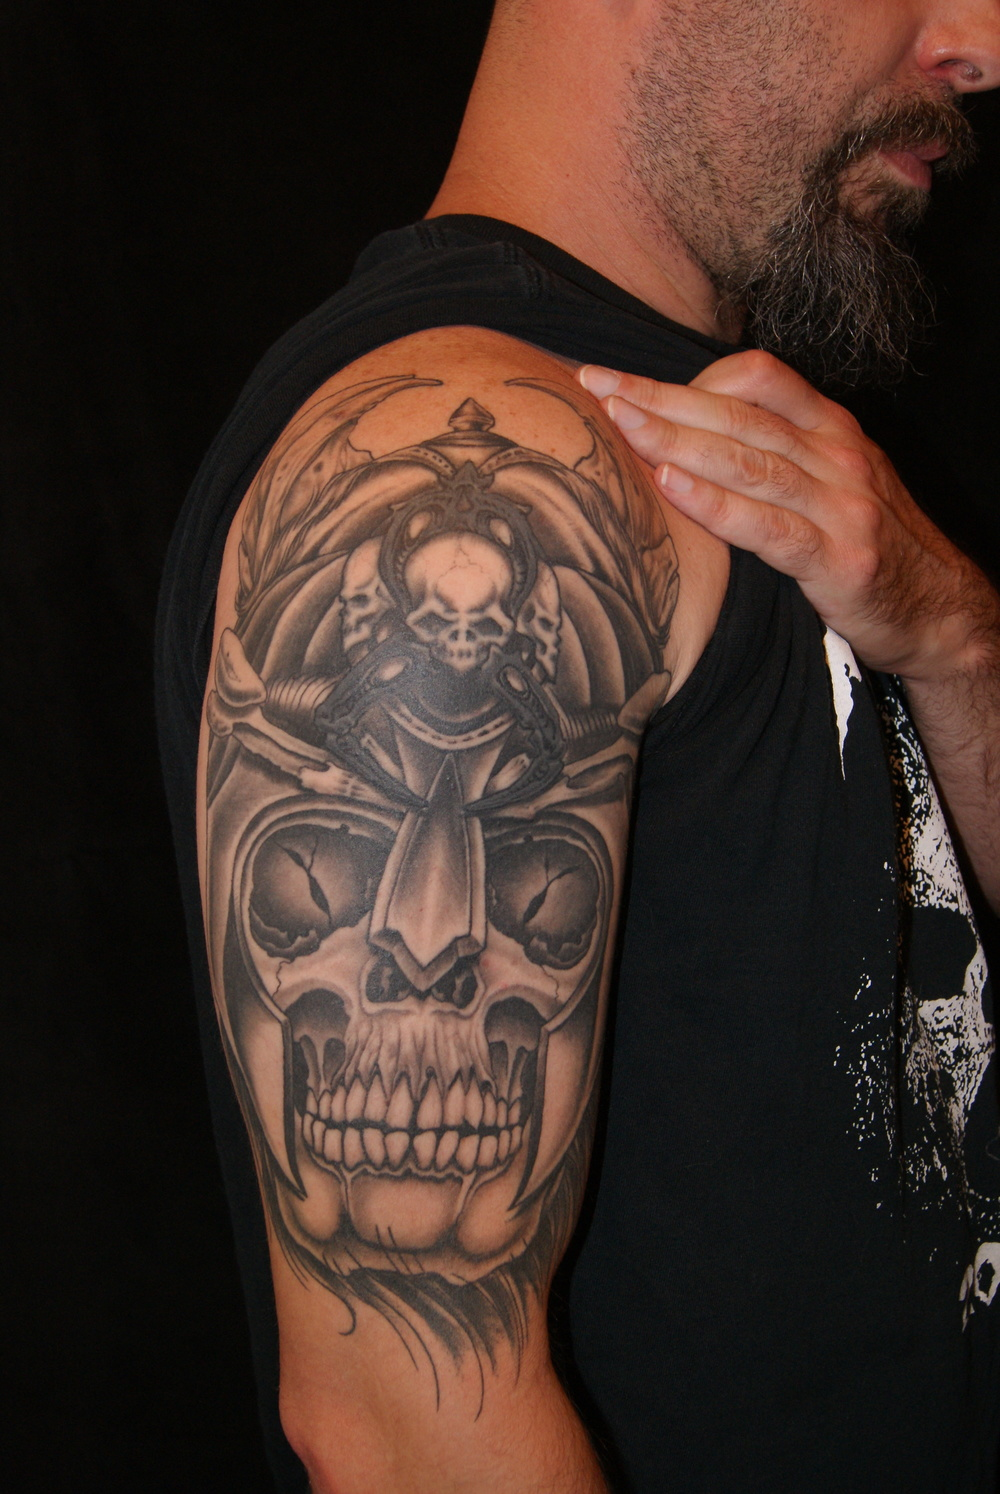 Viking skull warrior tattoo (existing tribal & skulls re-worked and incorporated) by Anthony Filo